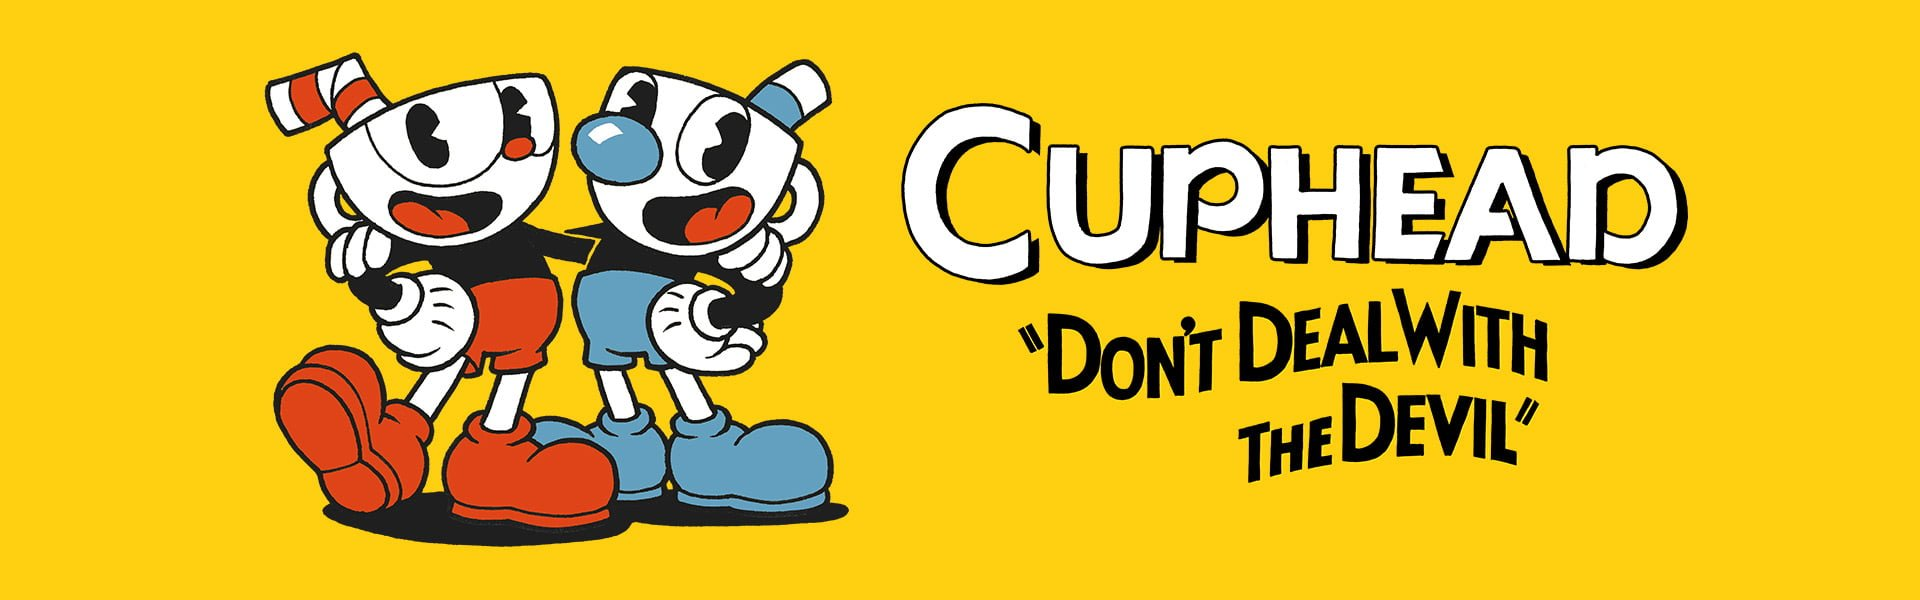 Cuphead PS4 Version Full Game Free Download - FrontLine Gaming